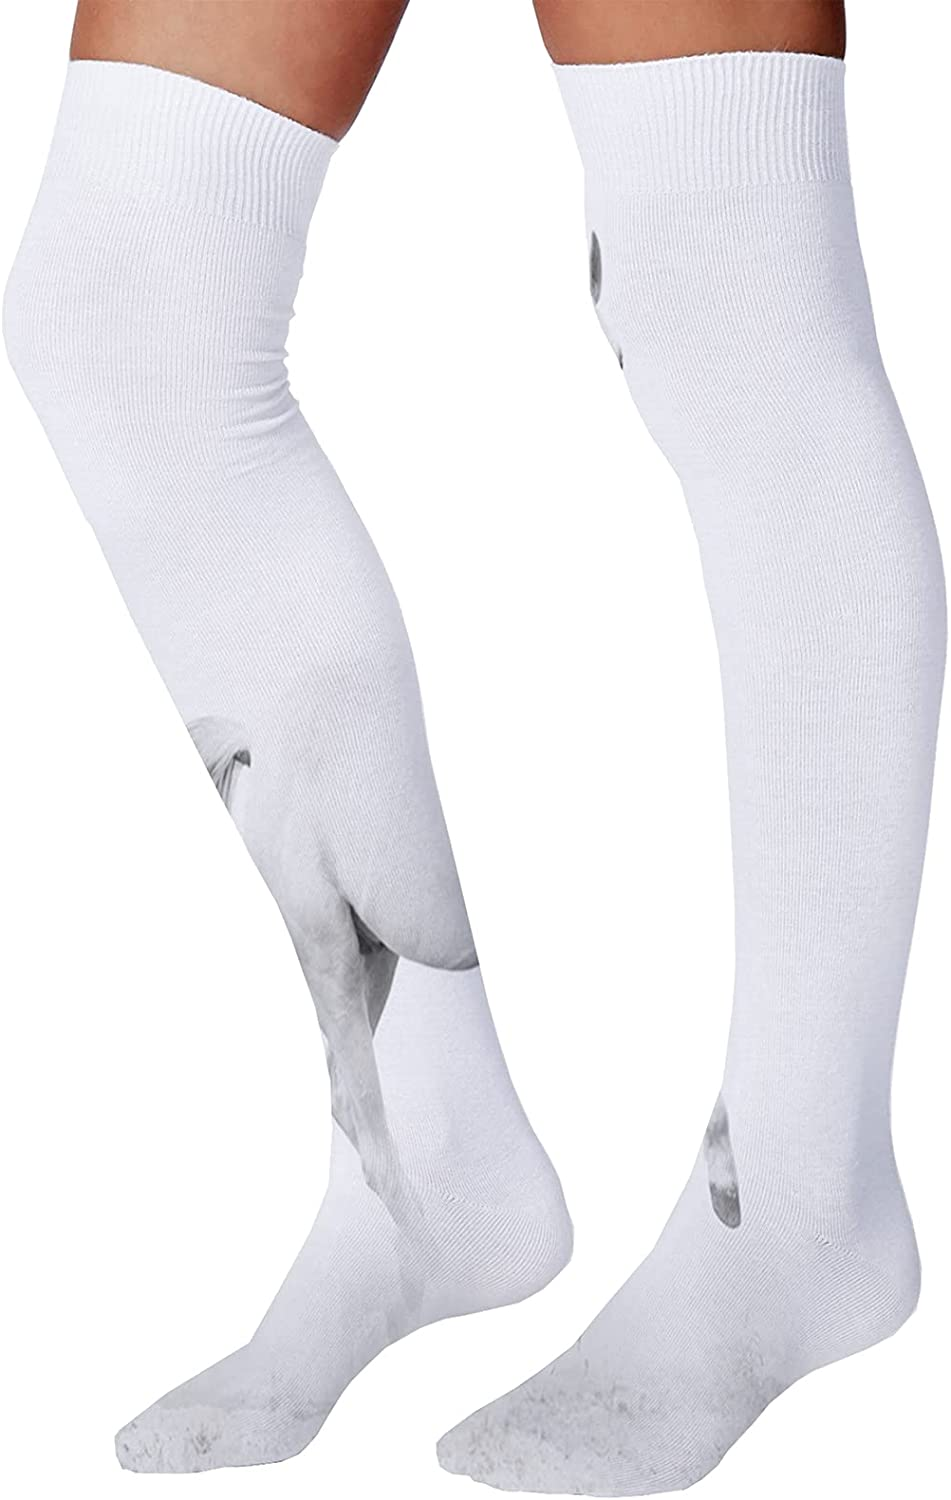 Men's and Women's Fun Socks,White Bird on Wire Aside of Many Black Ones Courage Will Power Individuality Theme